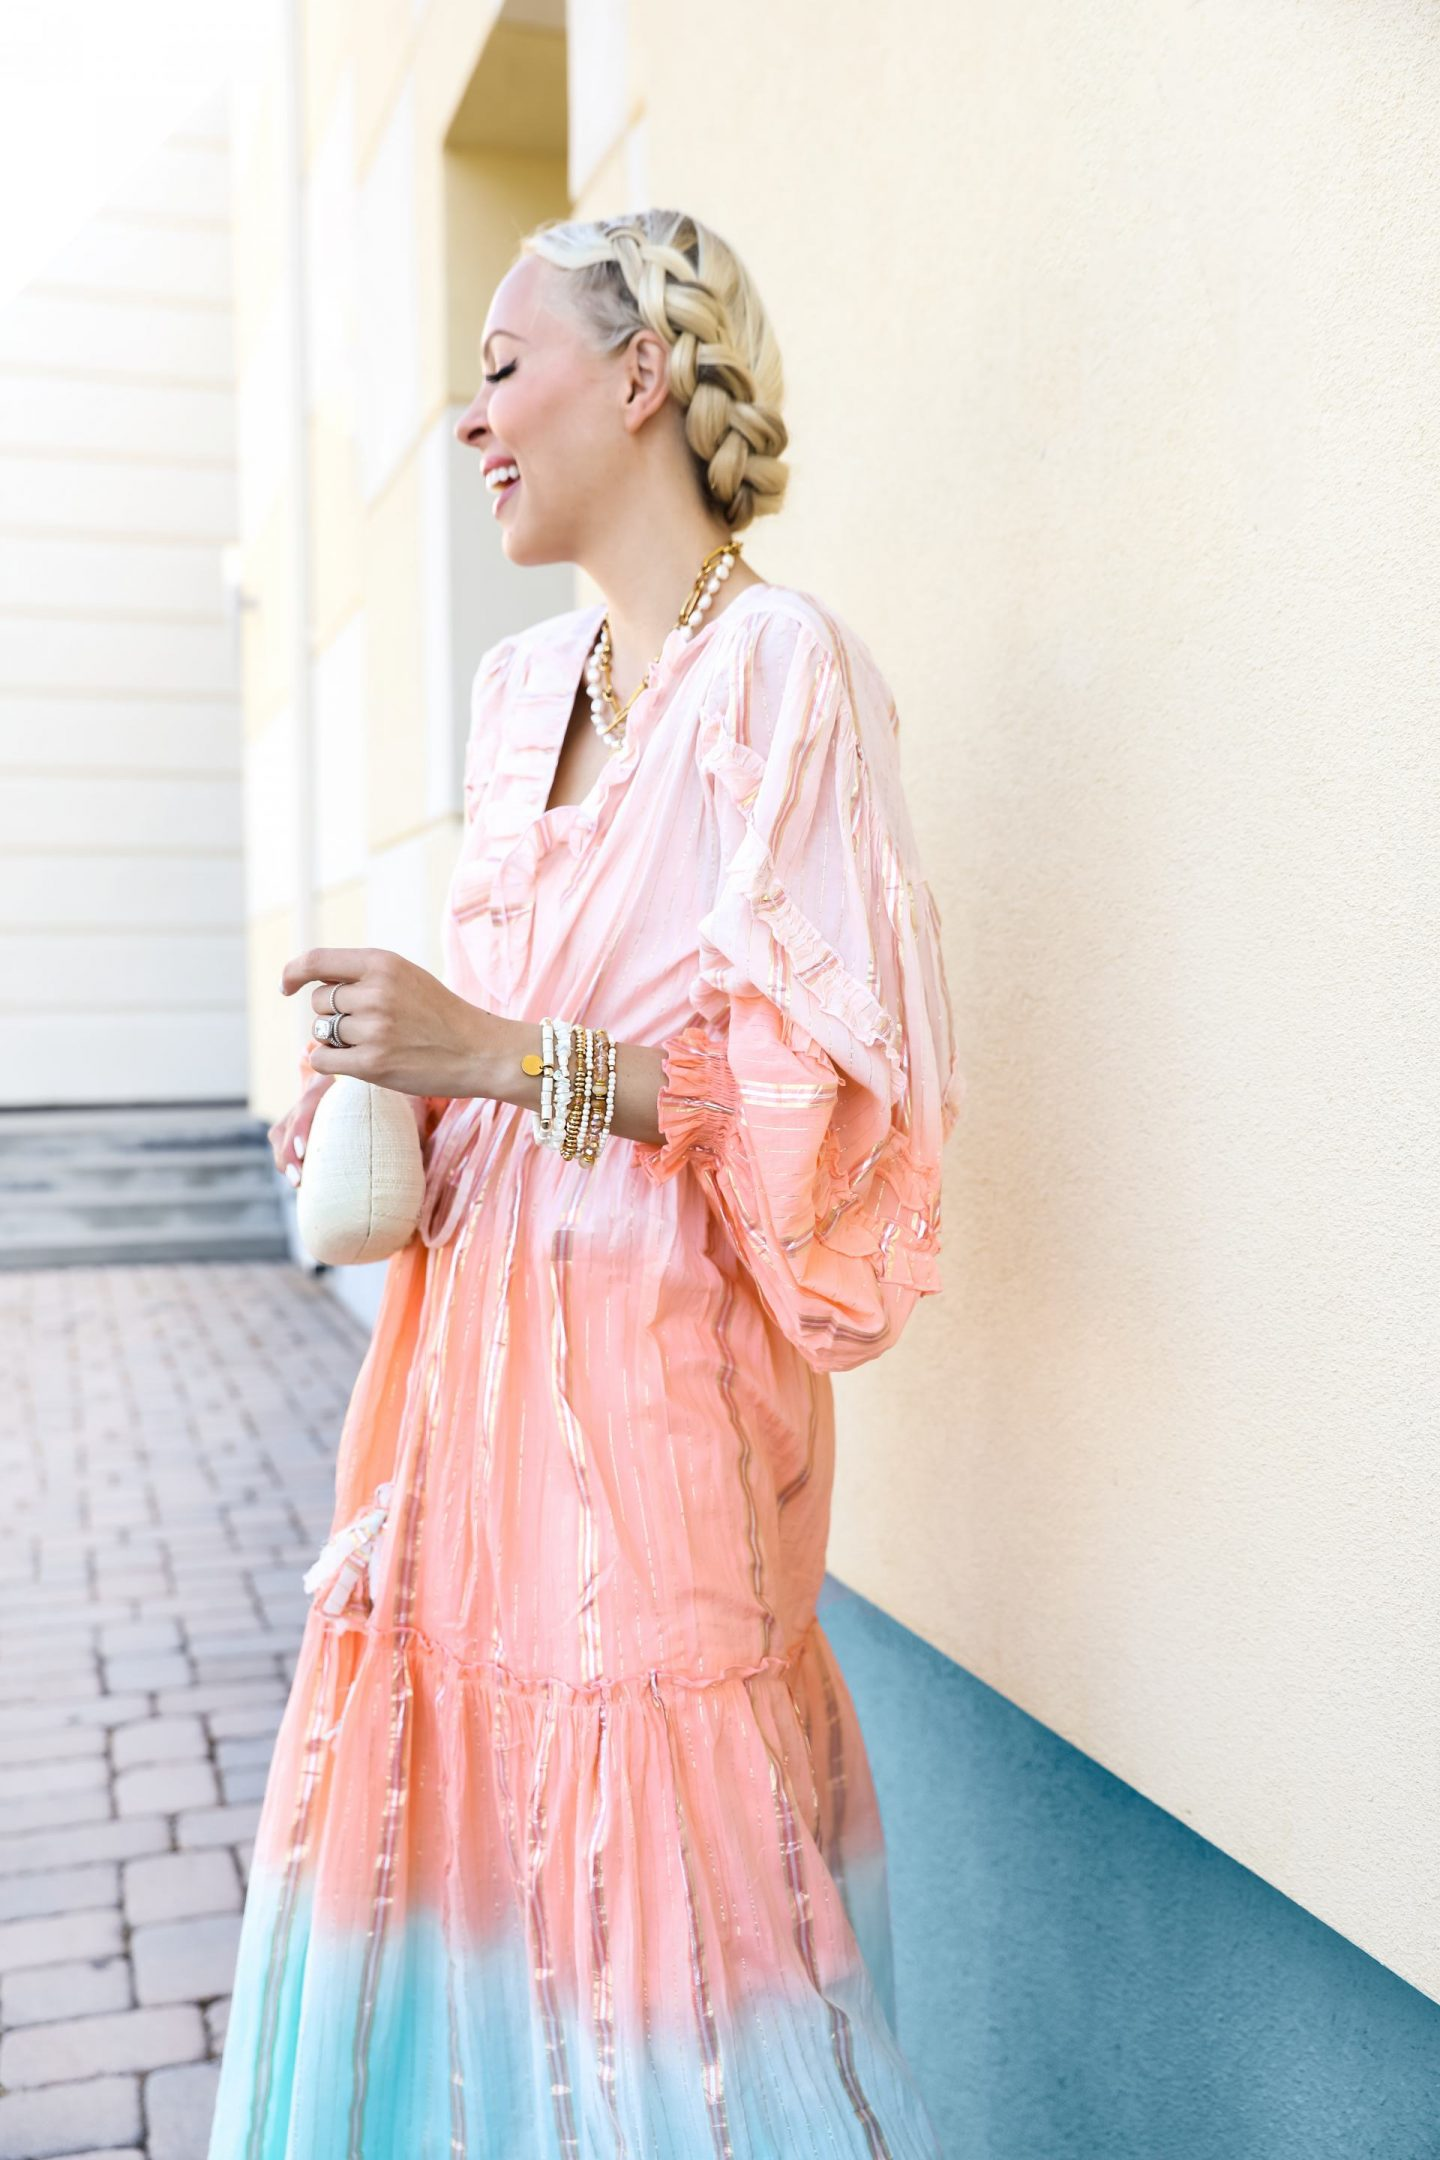 Miss June maxi dress via Outdazl, vacation travel style ideas. By Veronica Levy, Lombard & Fifth.